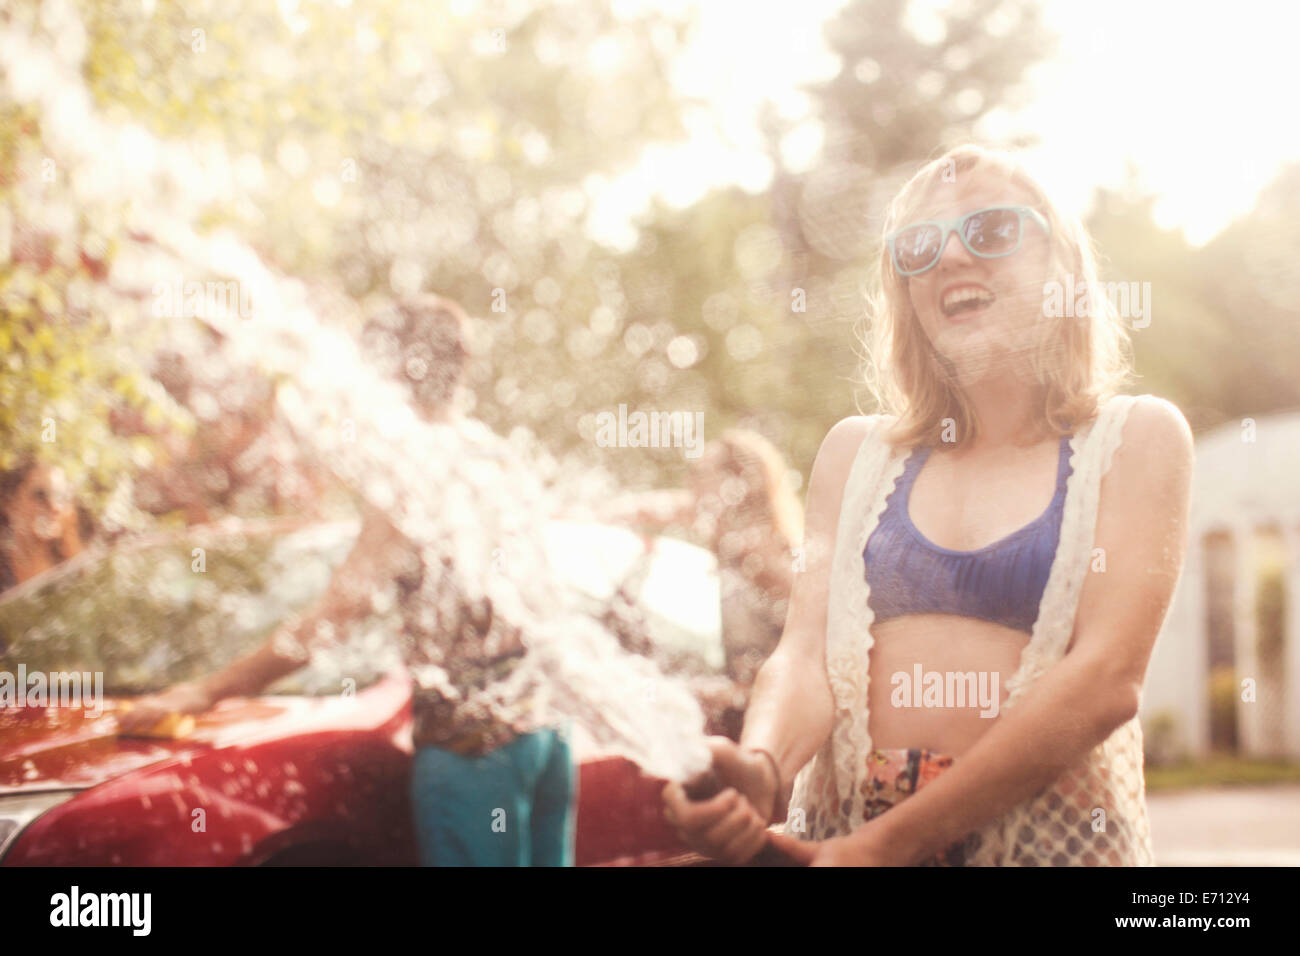 Young woman spraying water from hosepipe - Stock Image